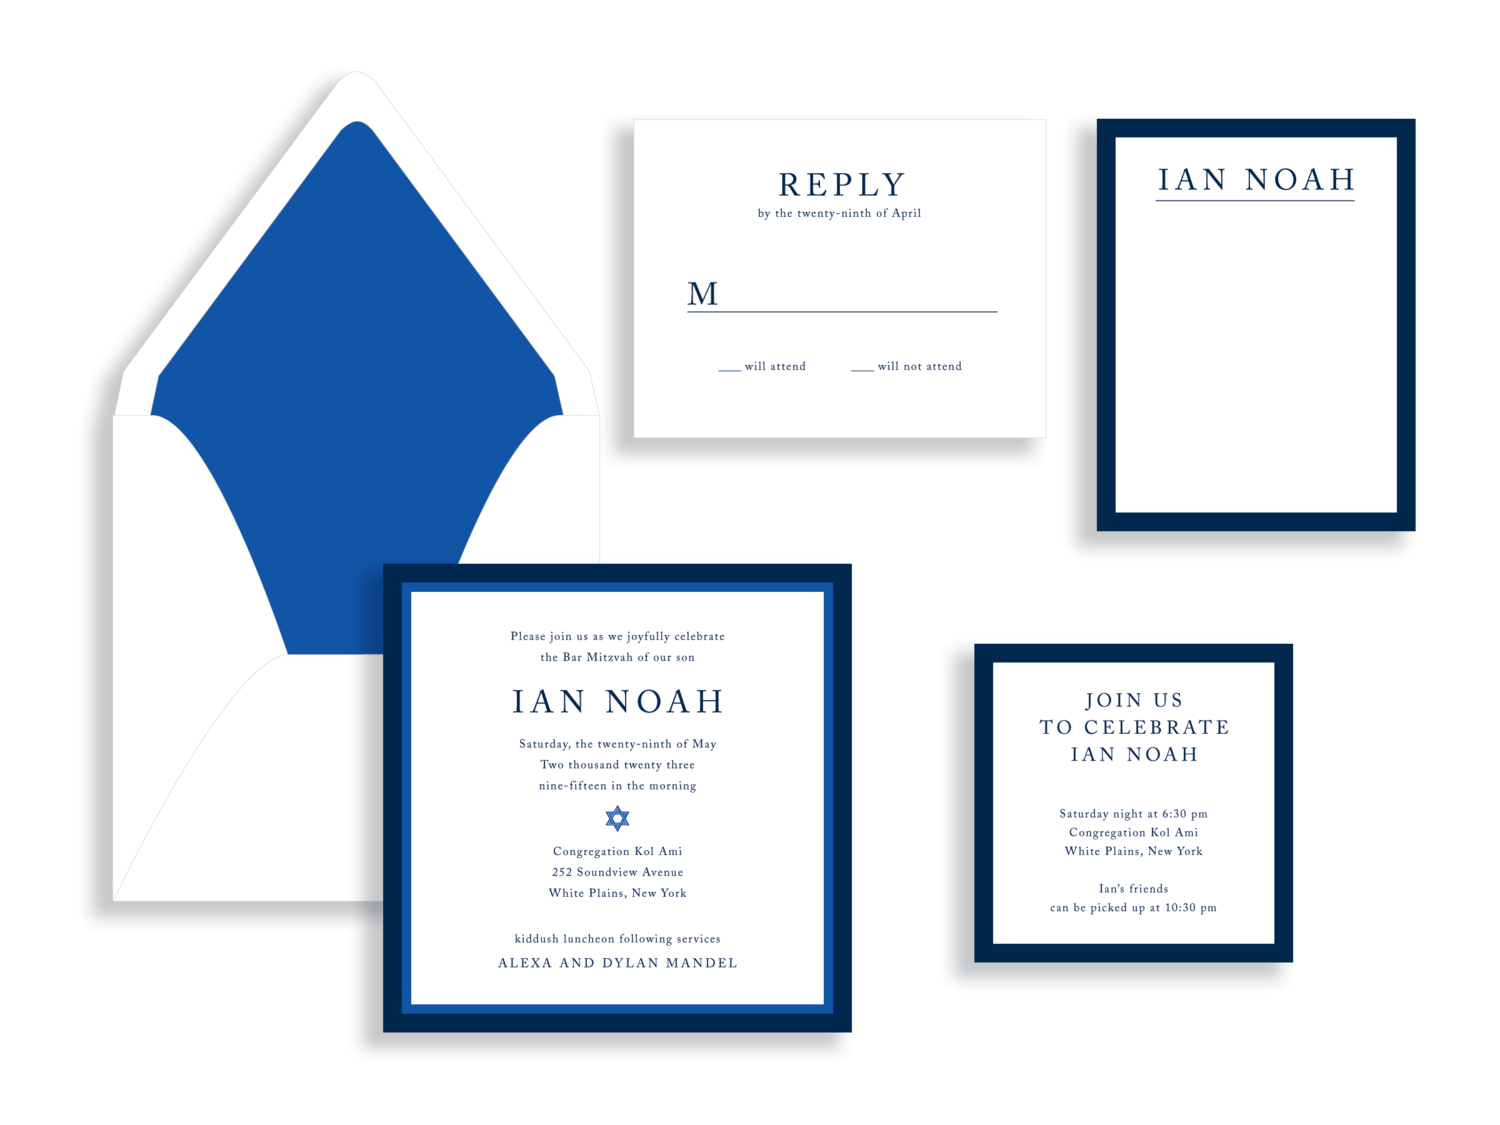 Ian bar mitzvah invitation available in the Washington DC Metro  area from Staccato.